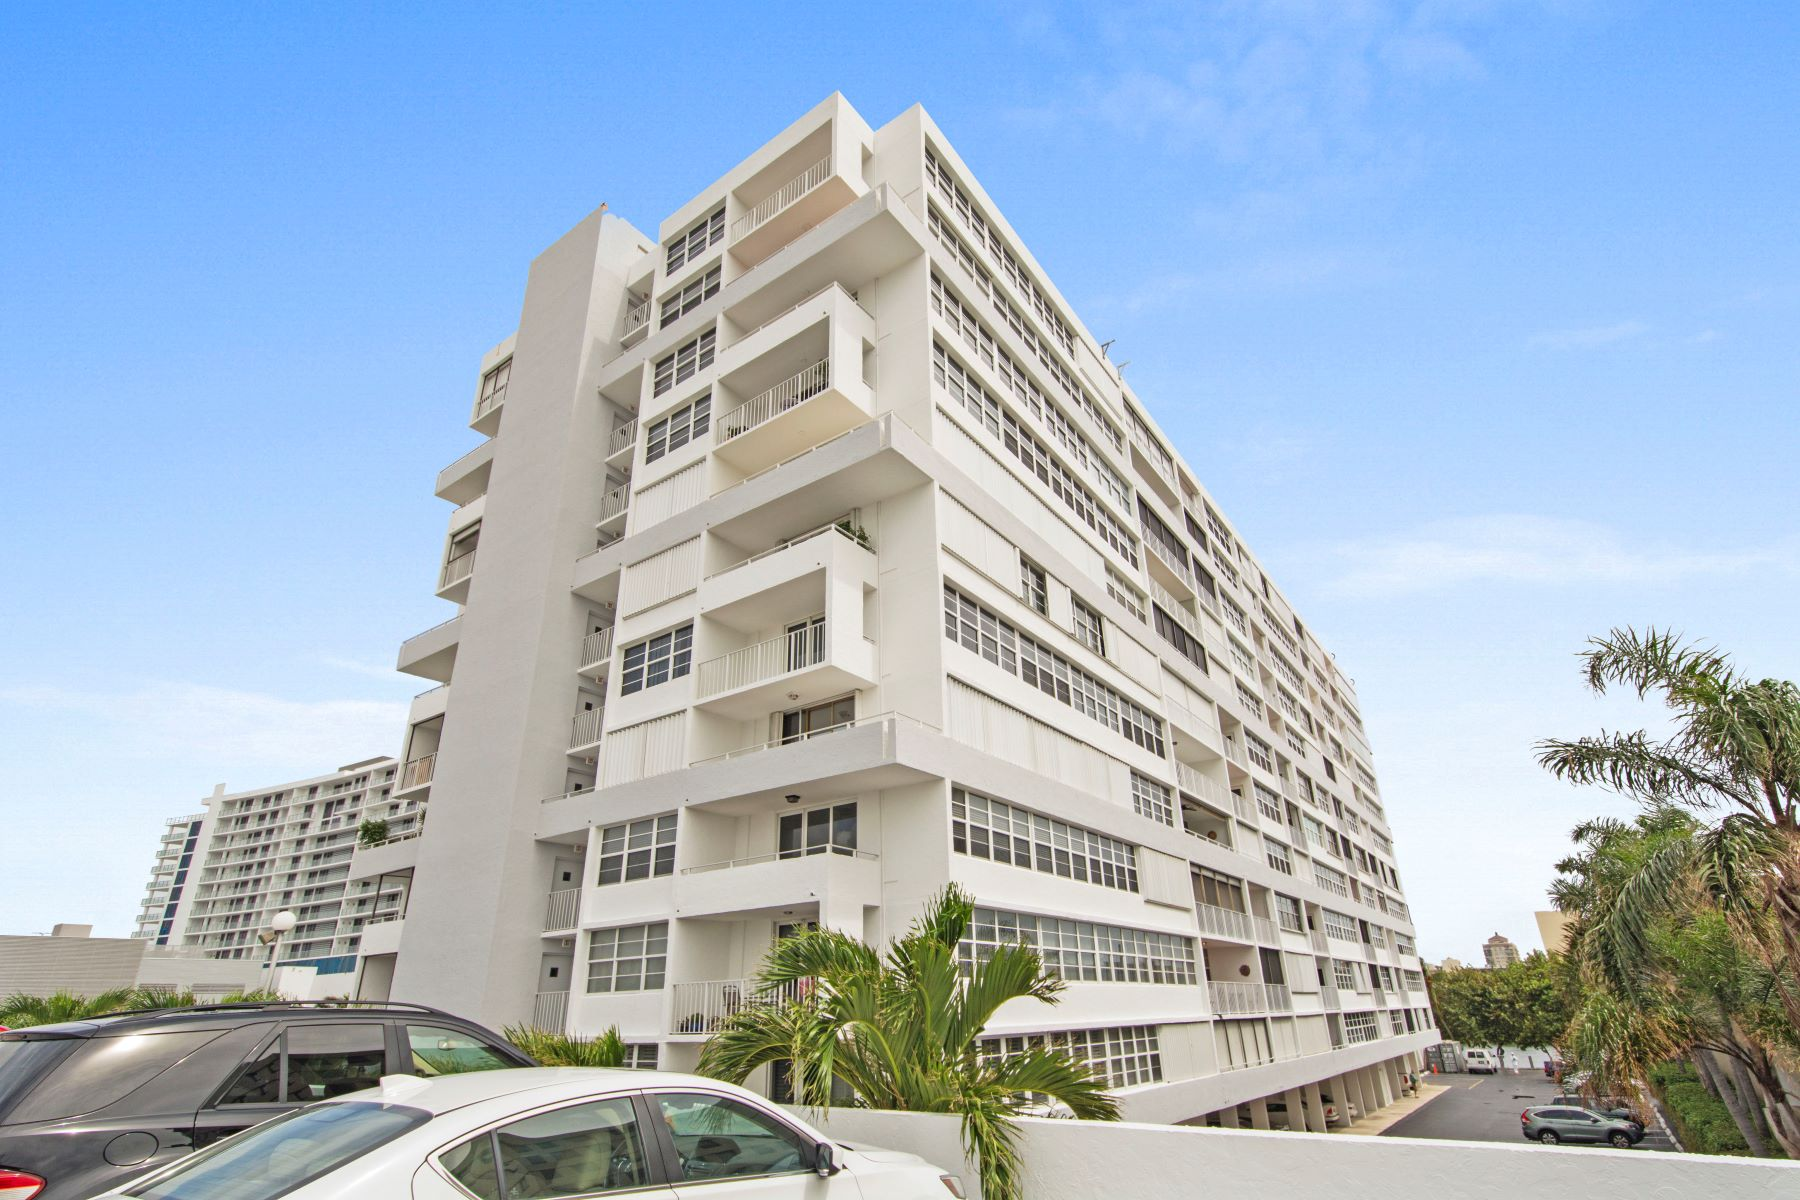 Condominium for Sale at 1170 N Federal Hwy 1170 N Federal Hwy 201 Fort Lauderdale, Florida, 33304 United States